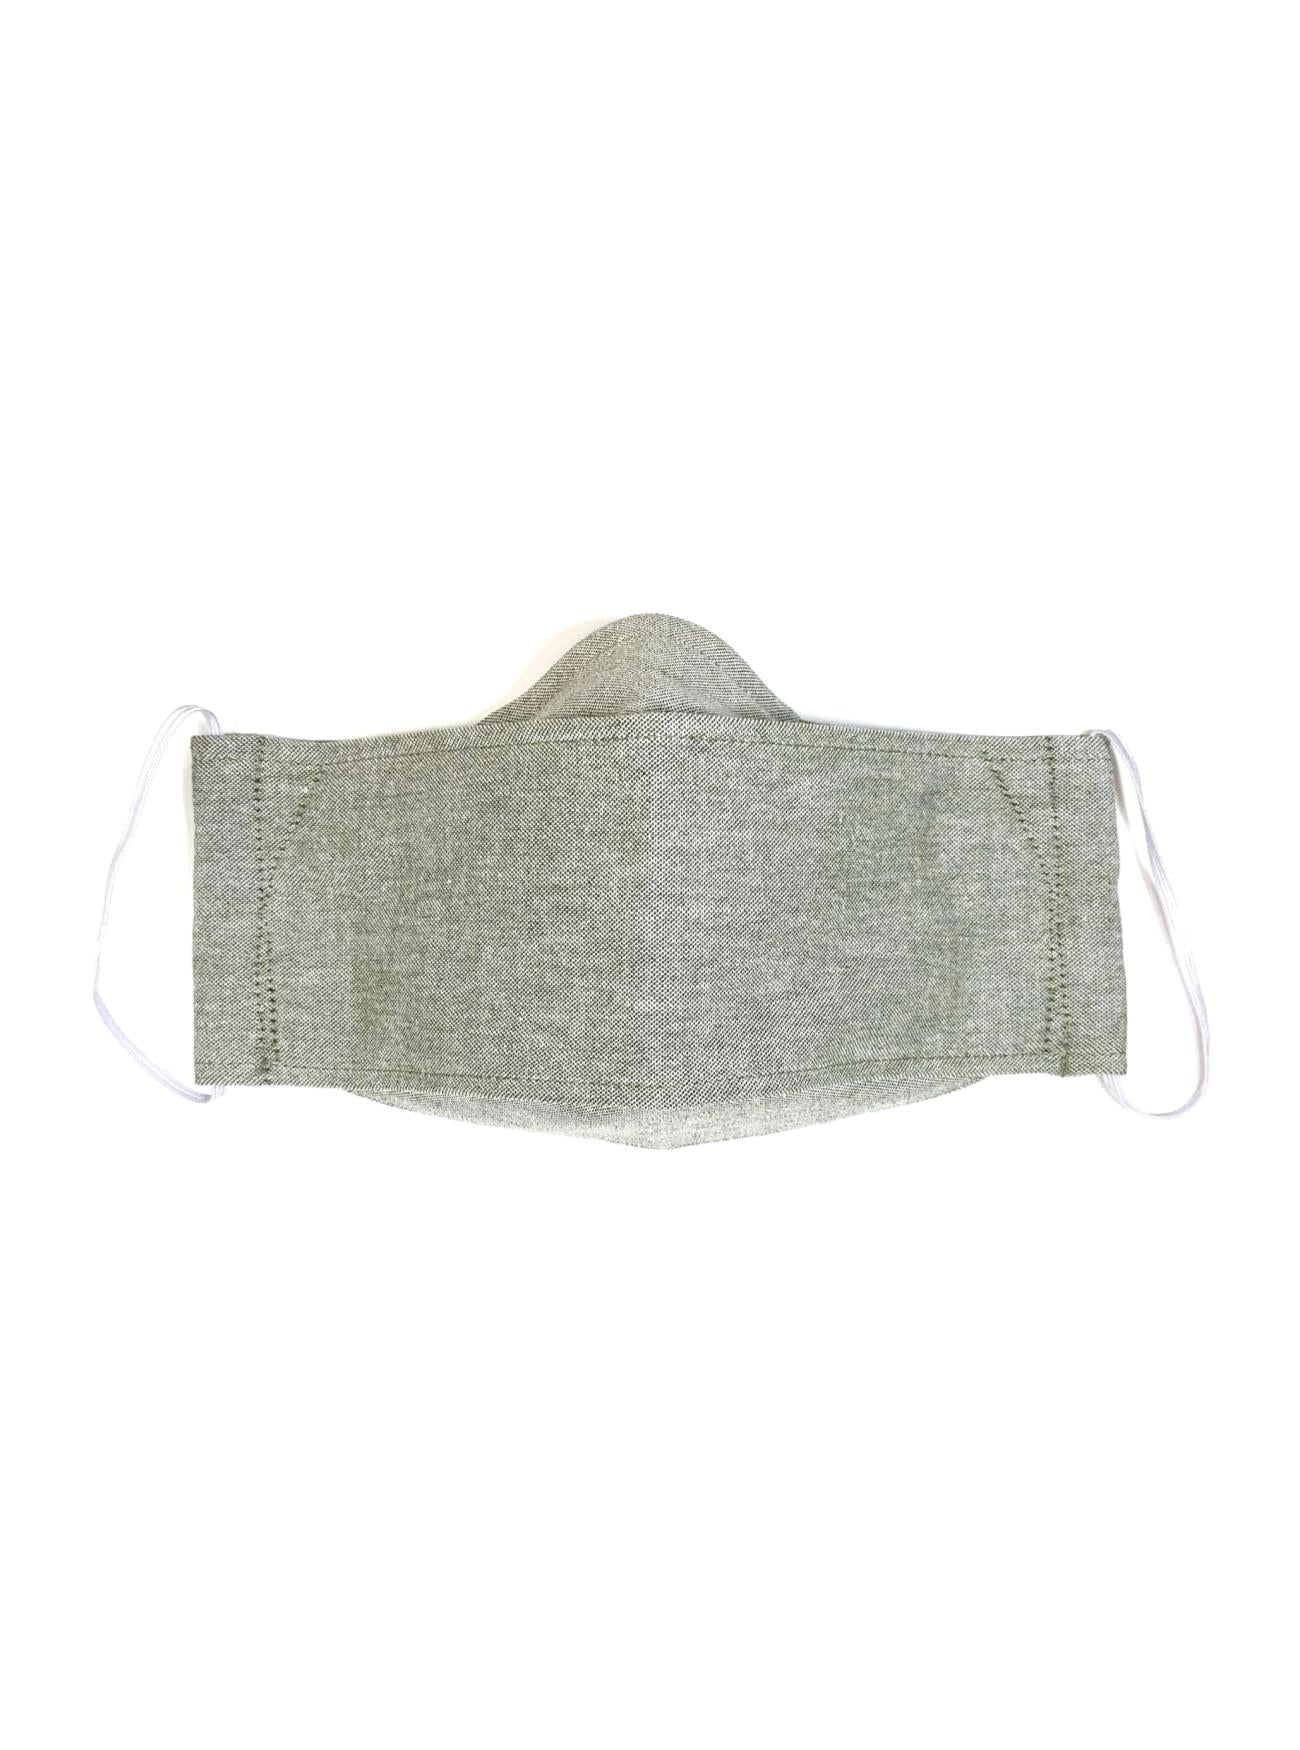 Oxford Sage, Reusable Face Mask [2-layers]